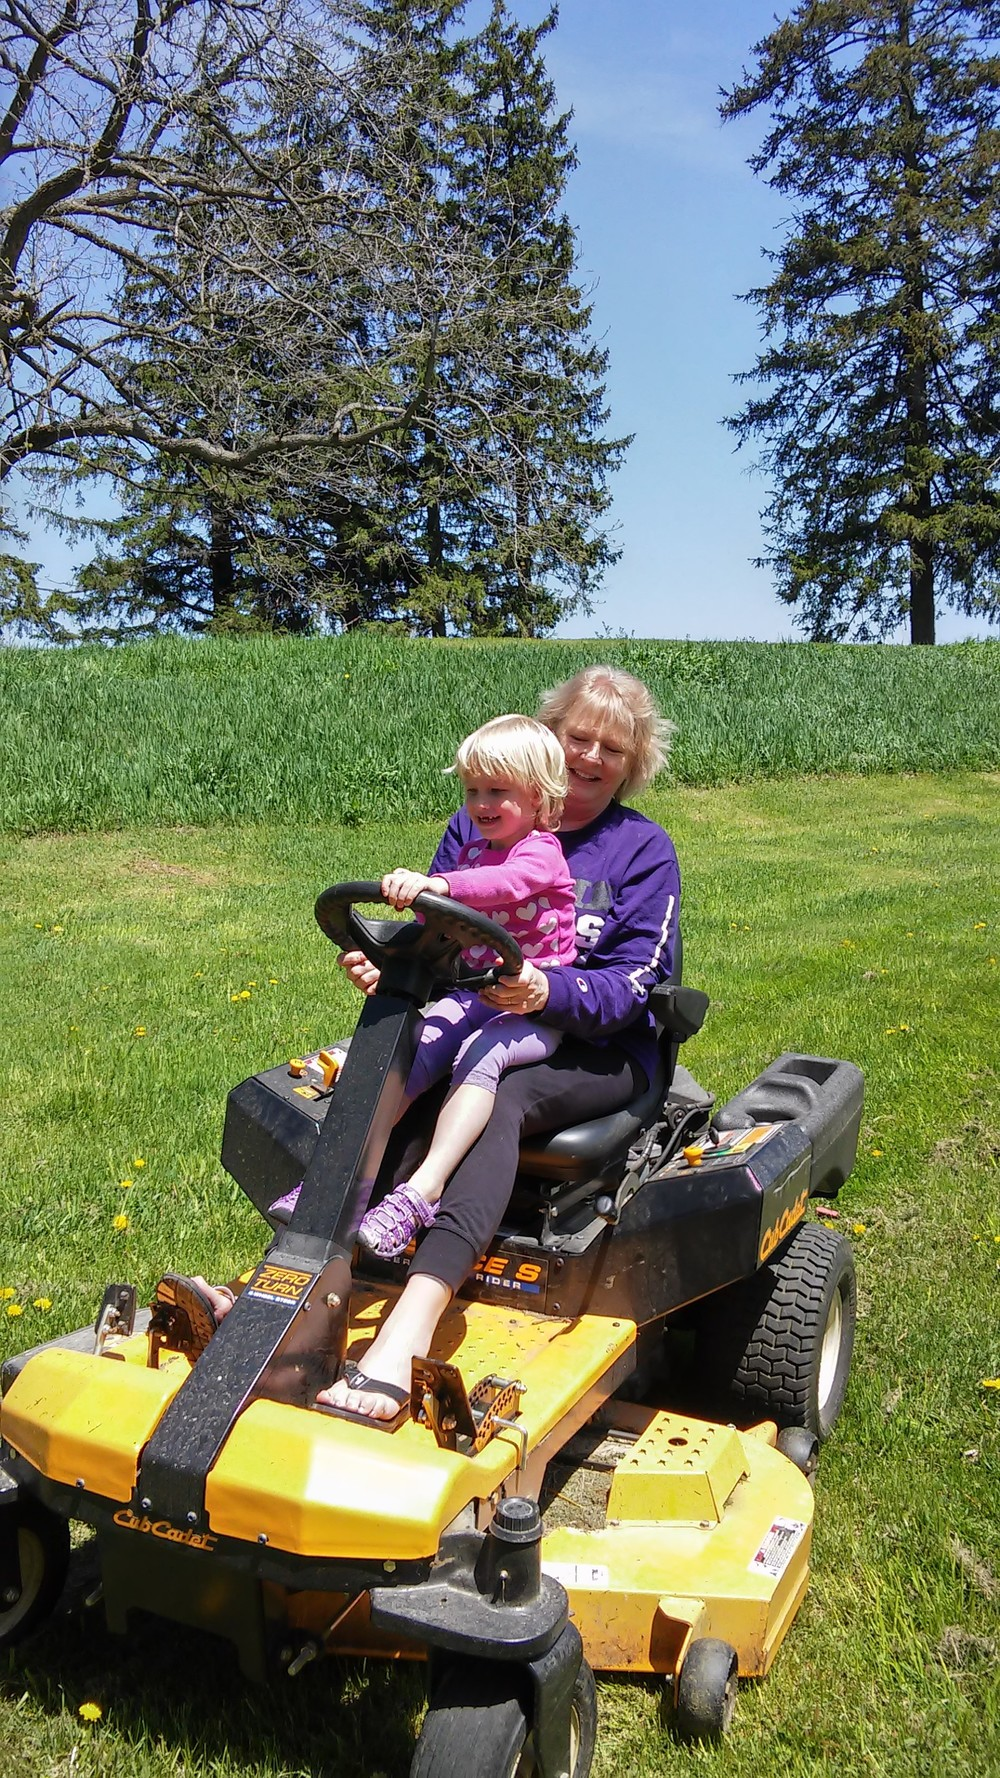 Mowin' the lawn with Grammy!